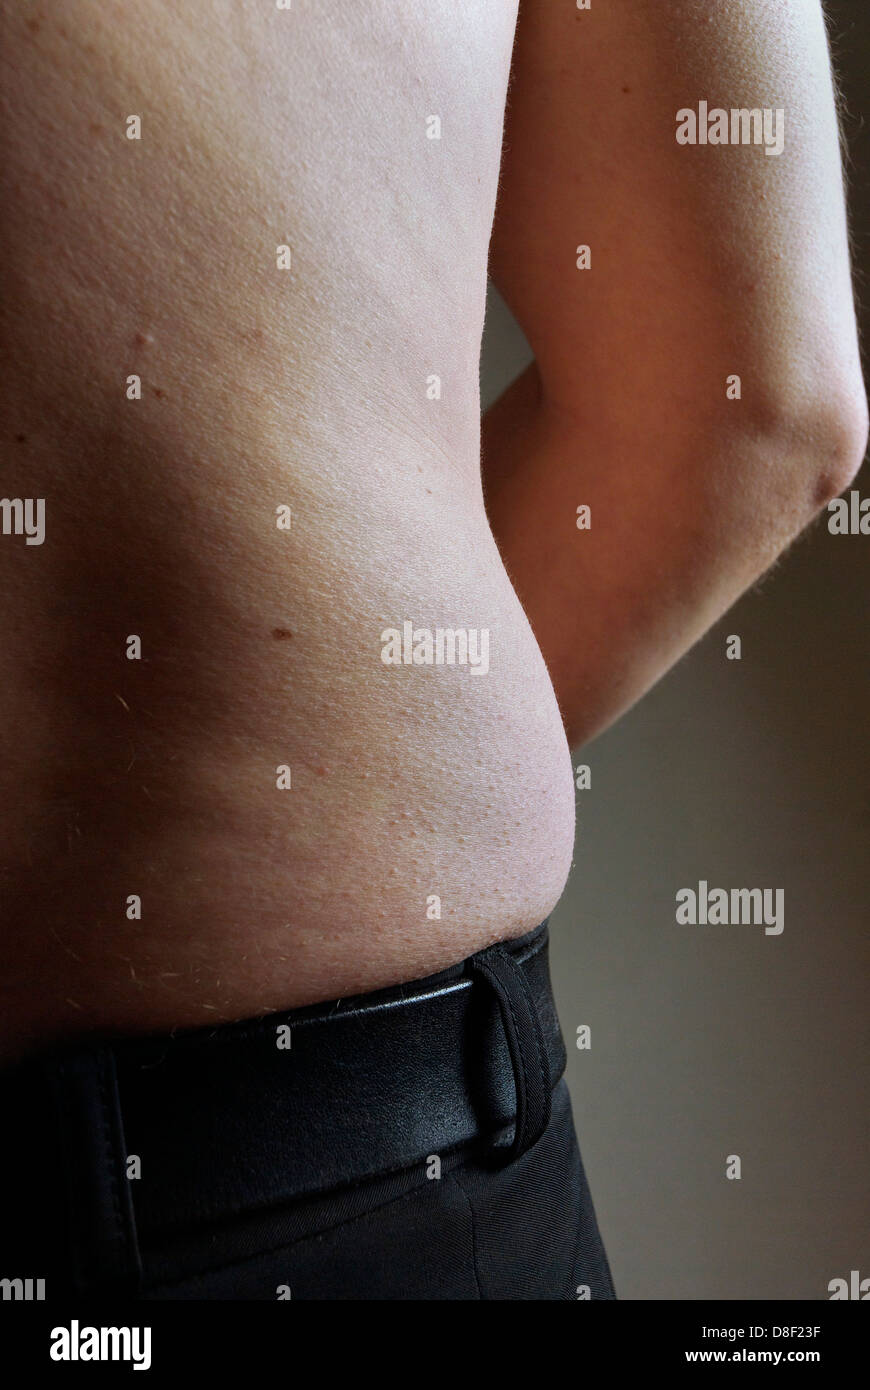 Man with unhealthy body shape - Stock Image